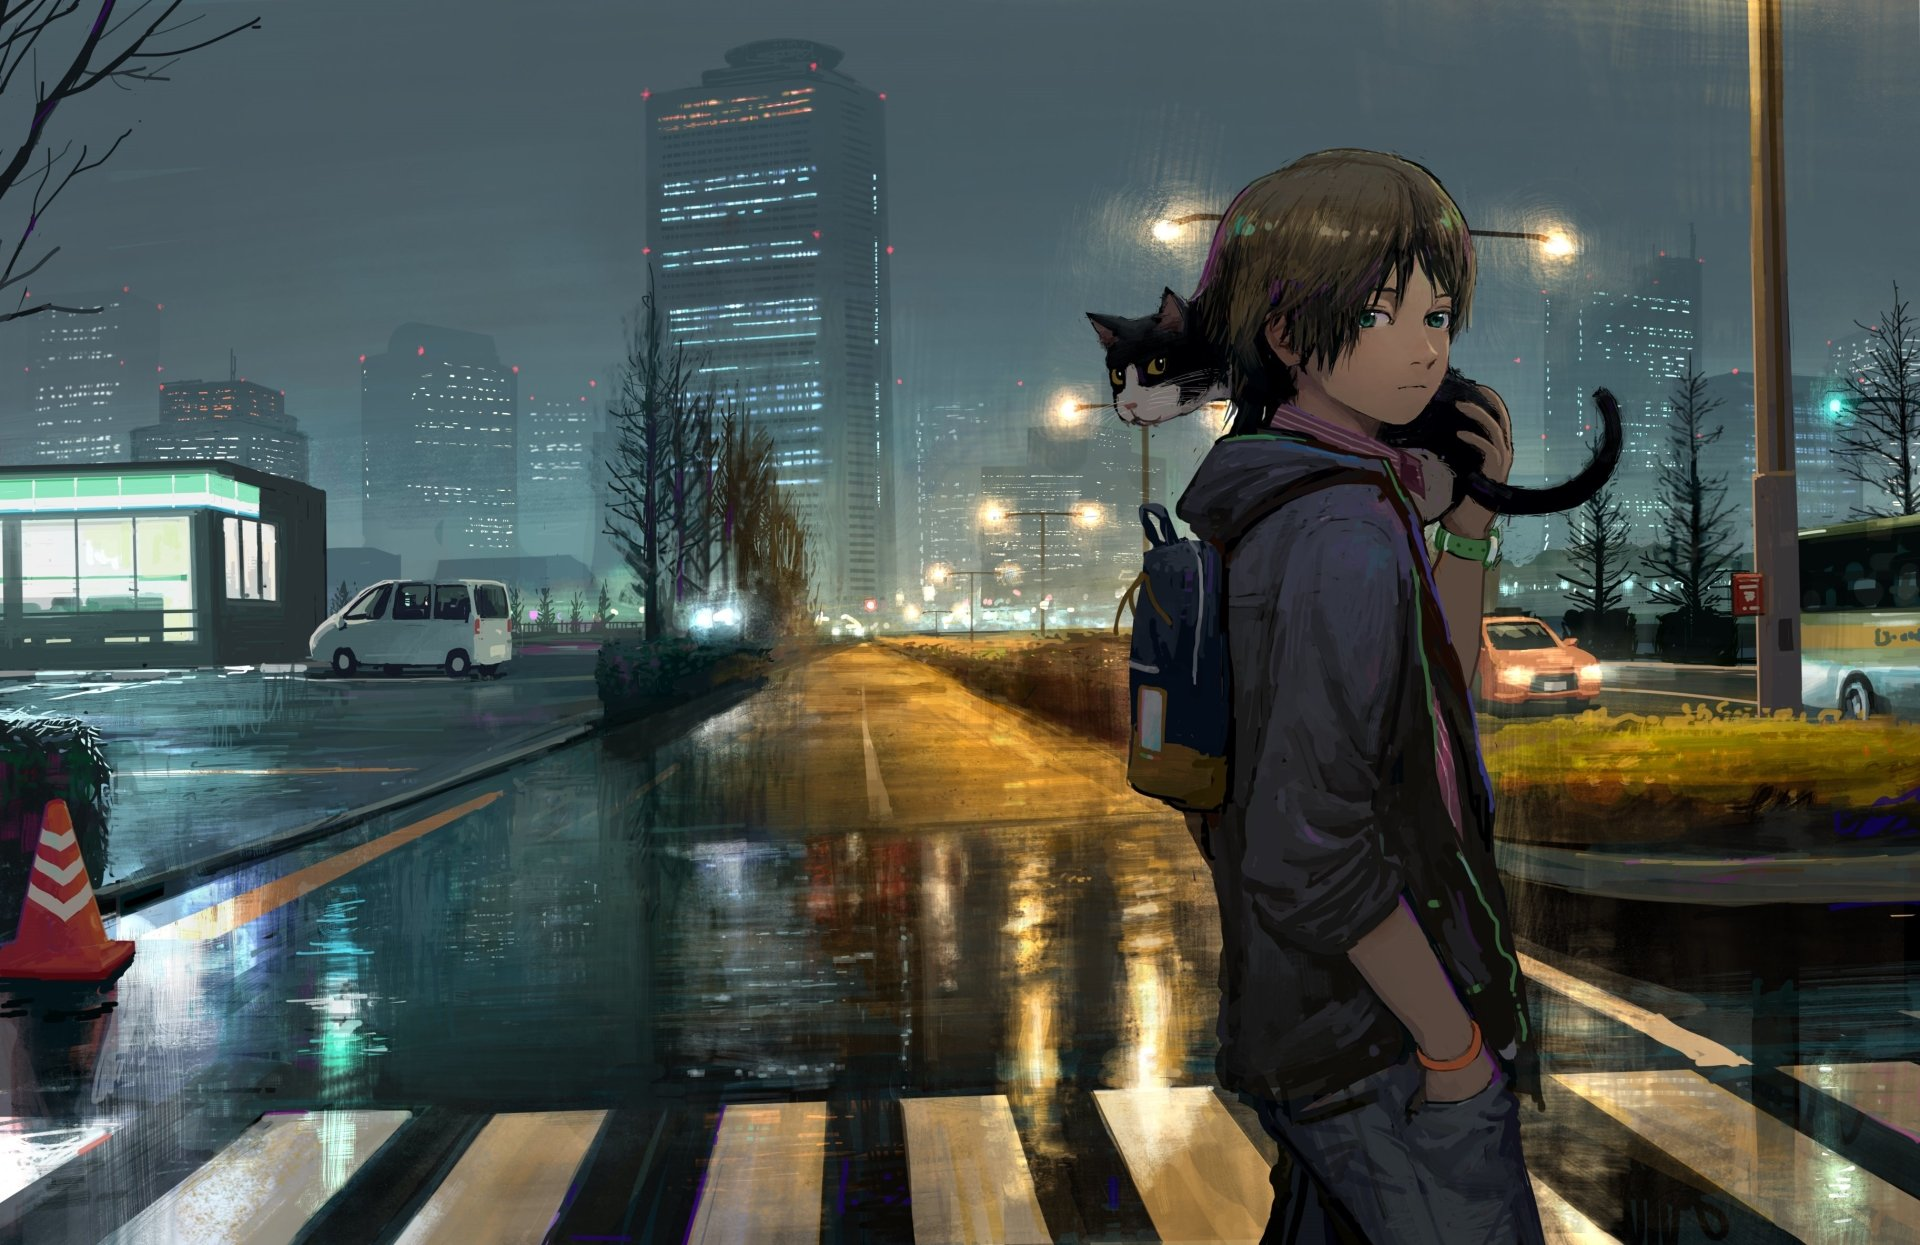 Anime - Original  Road Night Boy Rain Building Cat Green Eyes Wallpaper